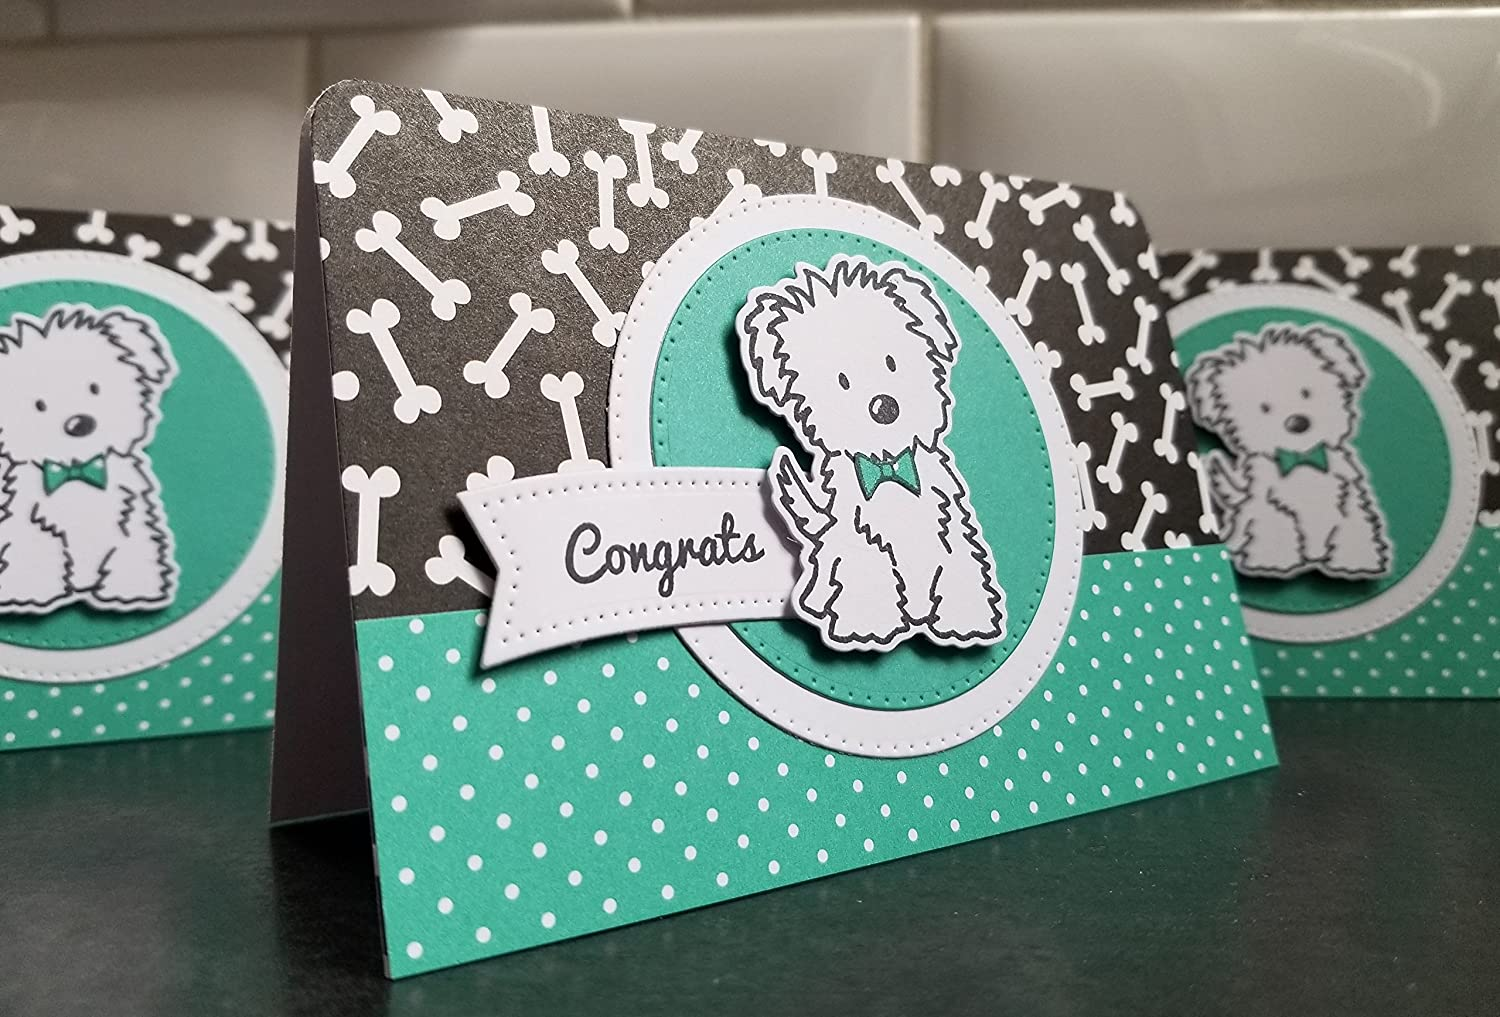 Dog Lover Gift Congratulations on Your New Dog Greeting Card